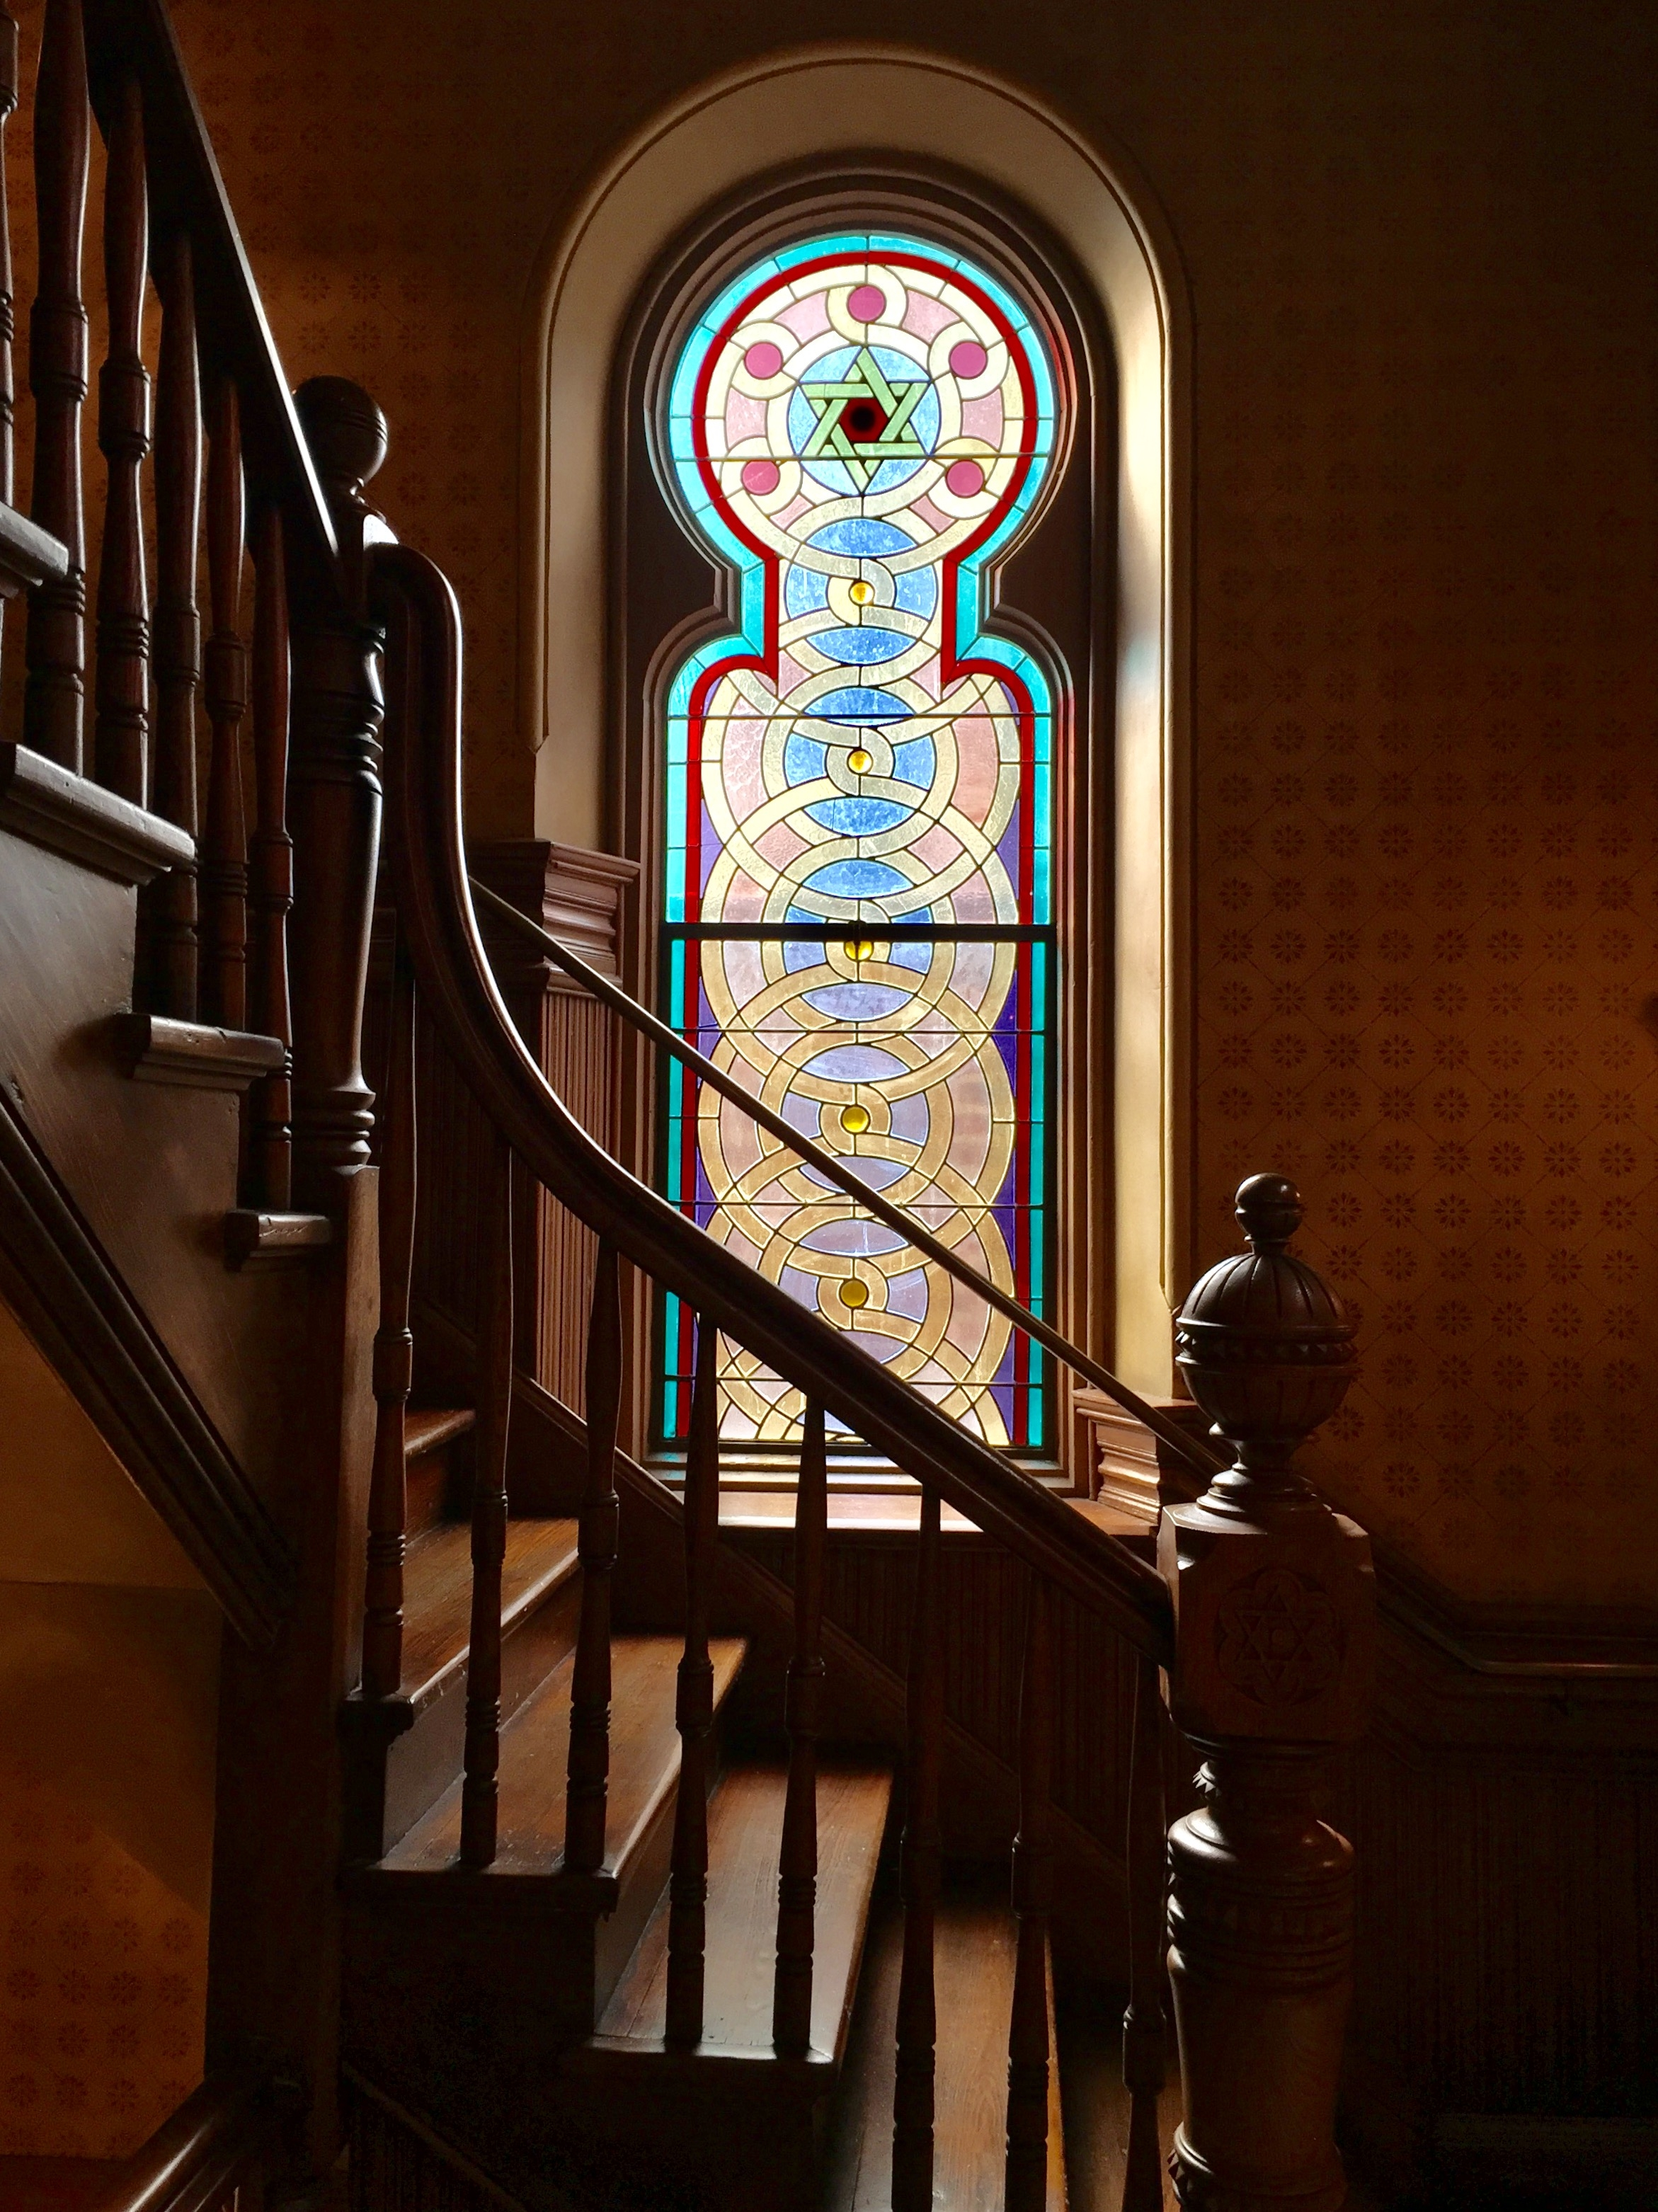 File 1 Pane Stained Glass Staircase Window Eldridge Street   Staircase Window Glass Design   Geometric   Architecture   Flower   Residential   Glass Brick